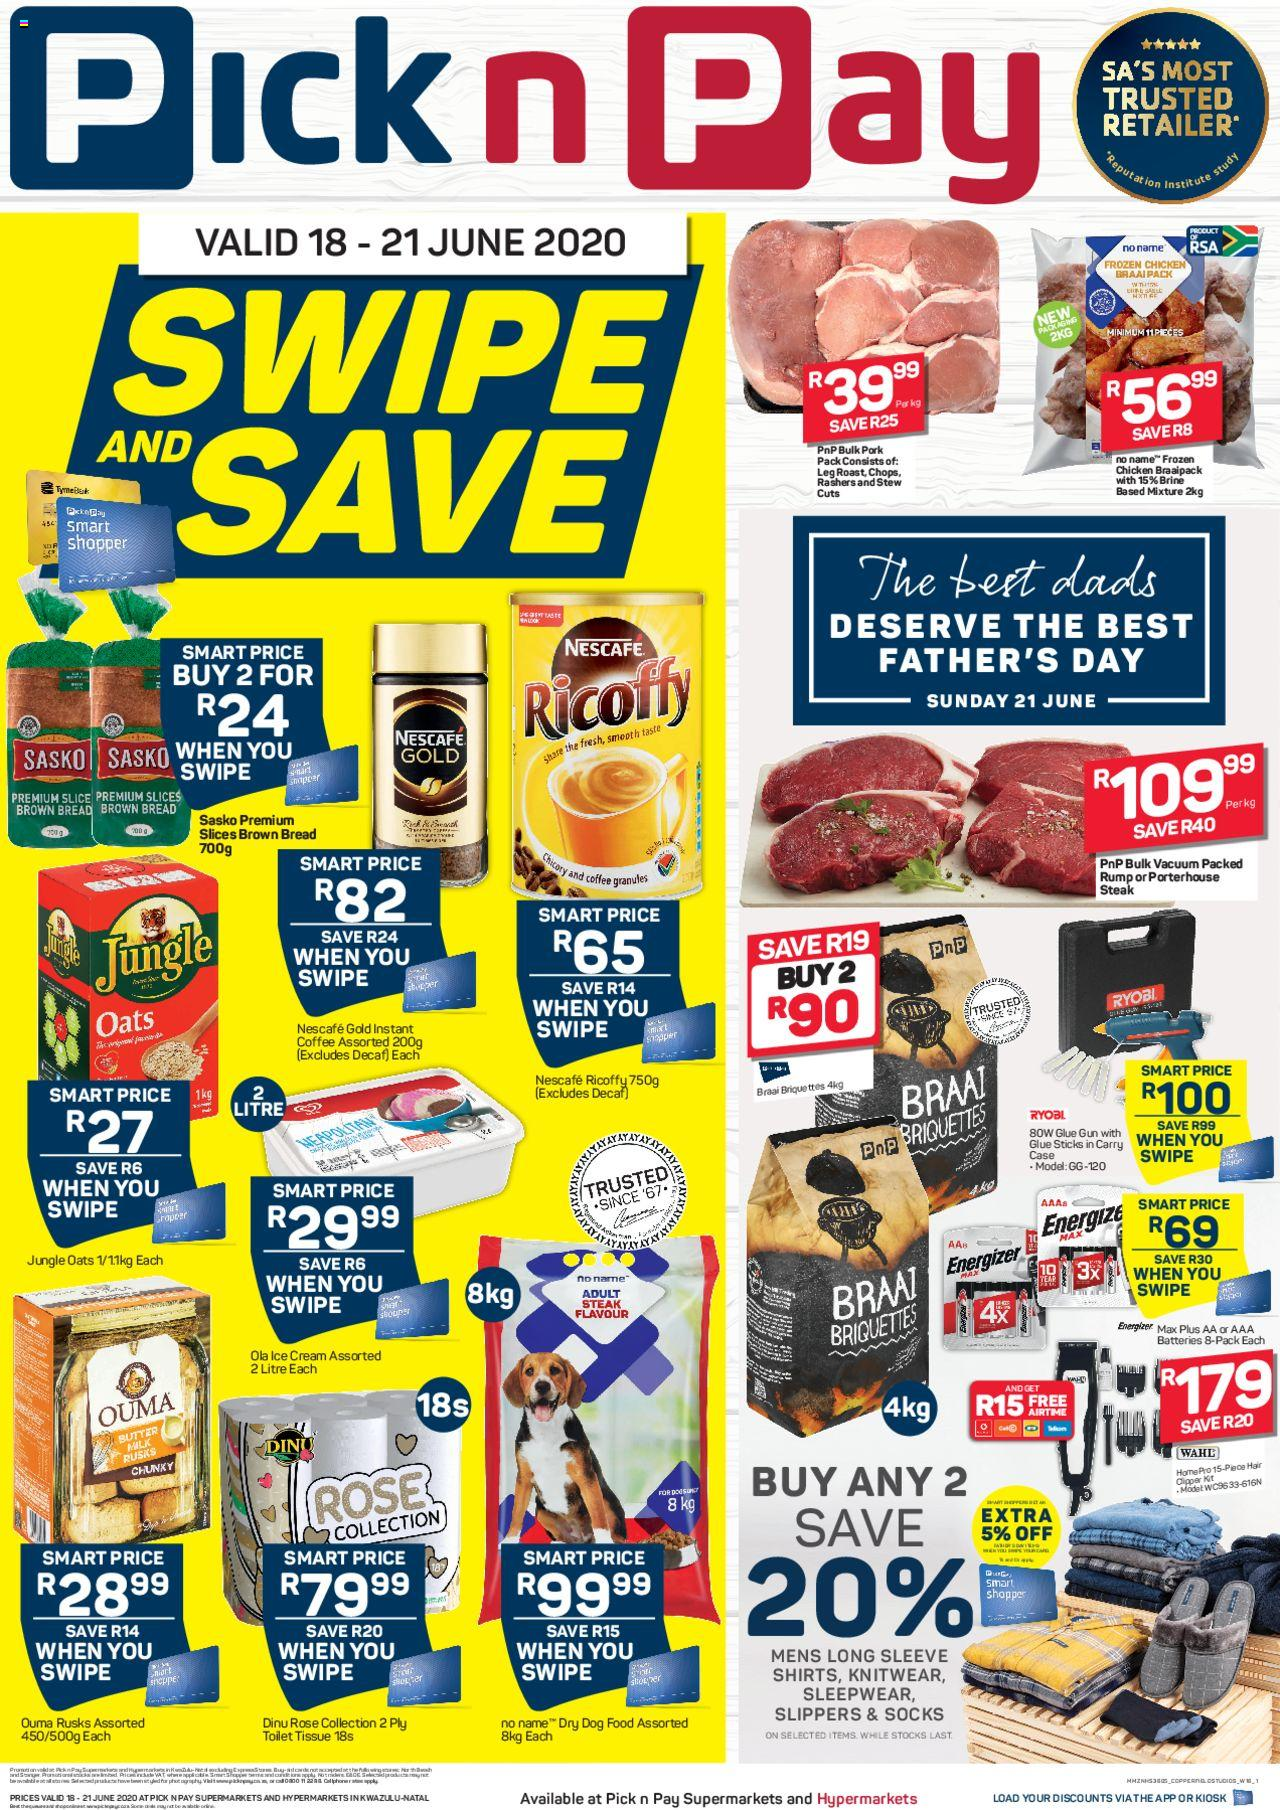 pick n pay specials swipe and save 18 june 2020